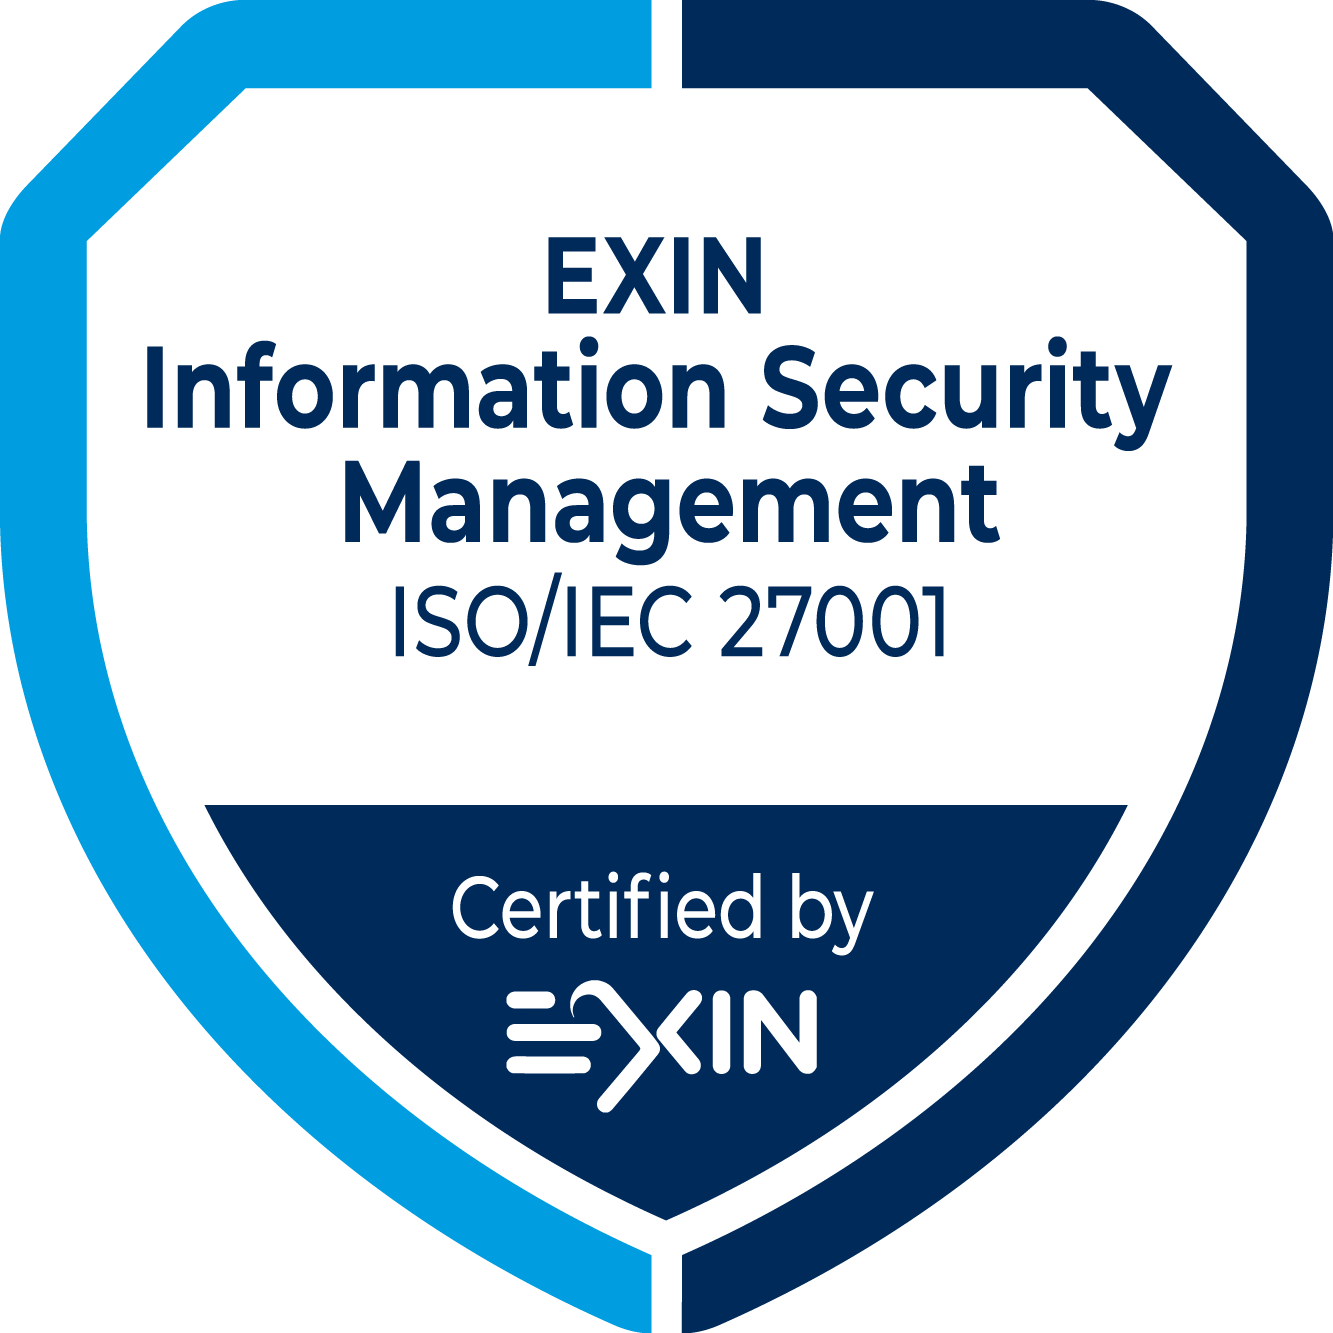 EXIN-Information-Security-Management-1